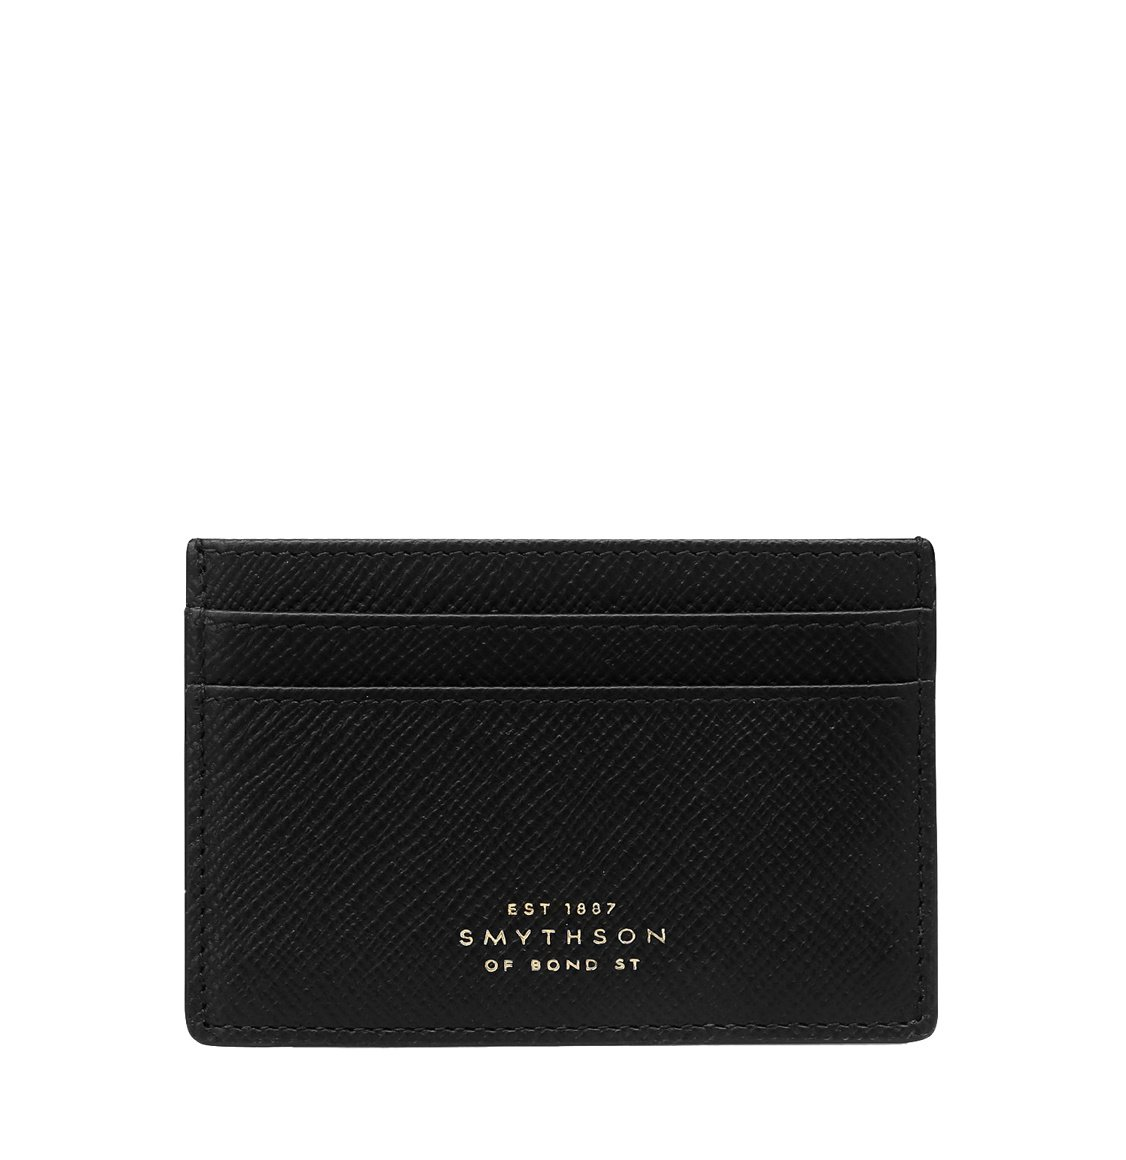 Smythson Panama Cross-Grain Leather Card Holder Black